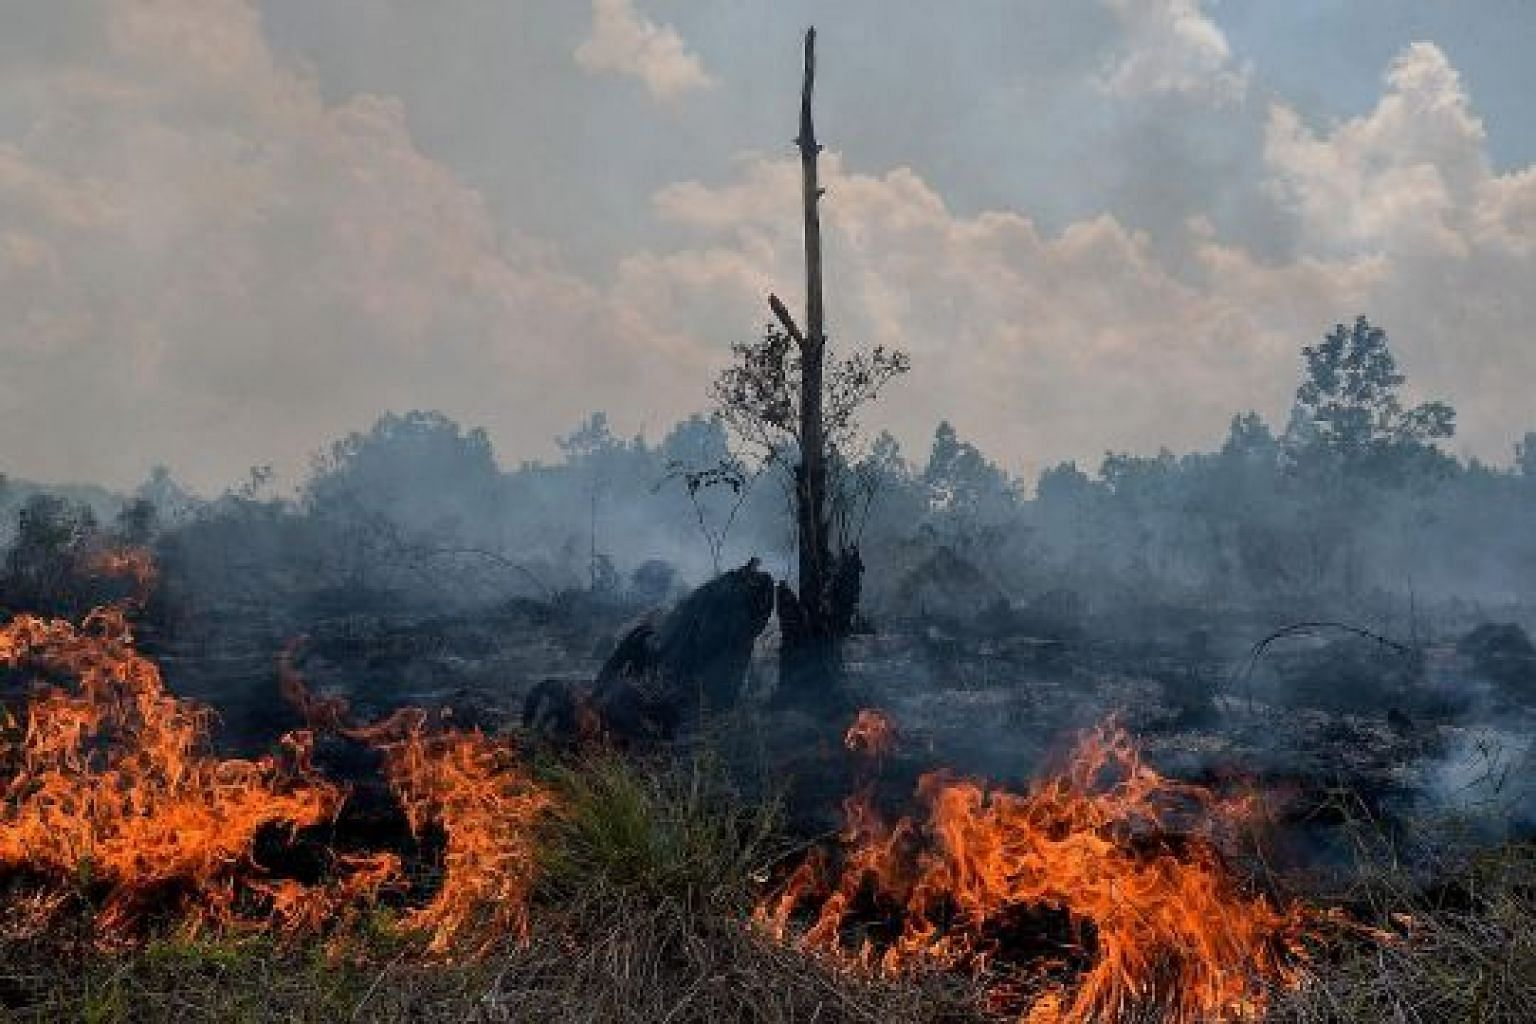 A peatland fire in Pekanbaru on Feb 1. The peatlands of Riau province account for more than 50 per cent of the total on the island.